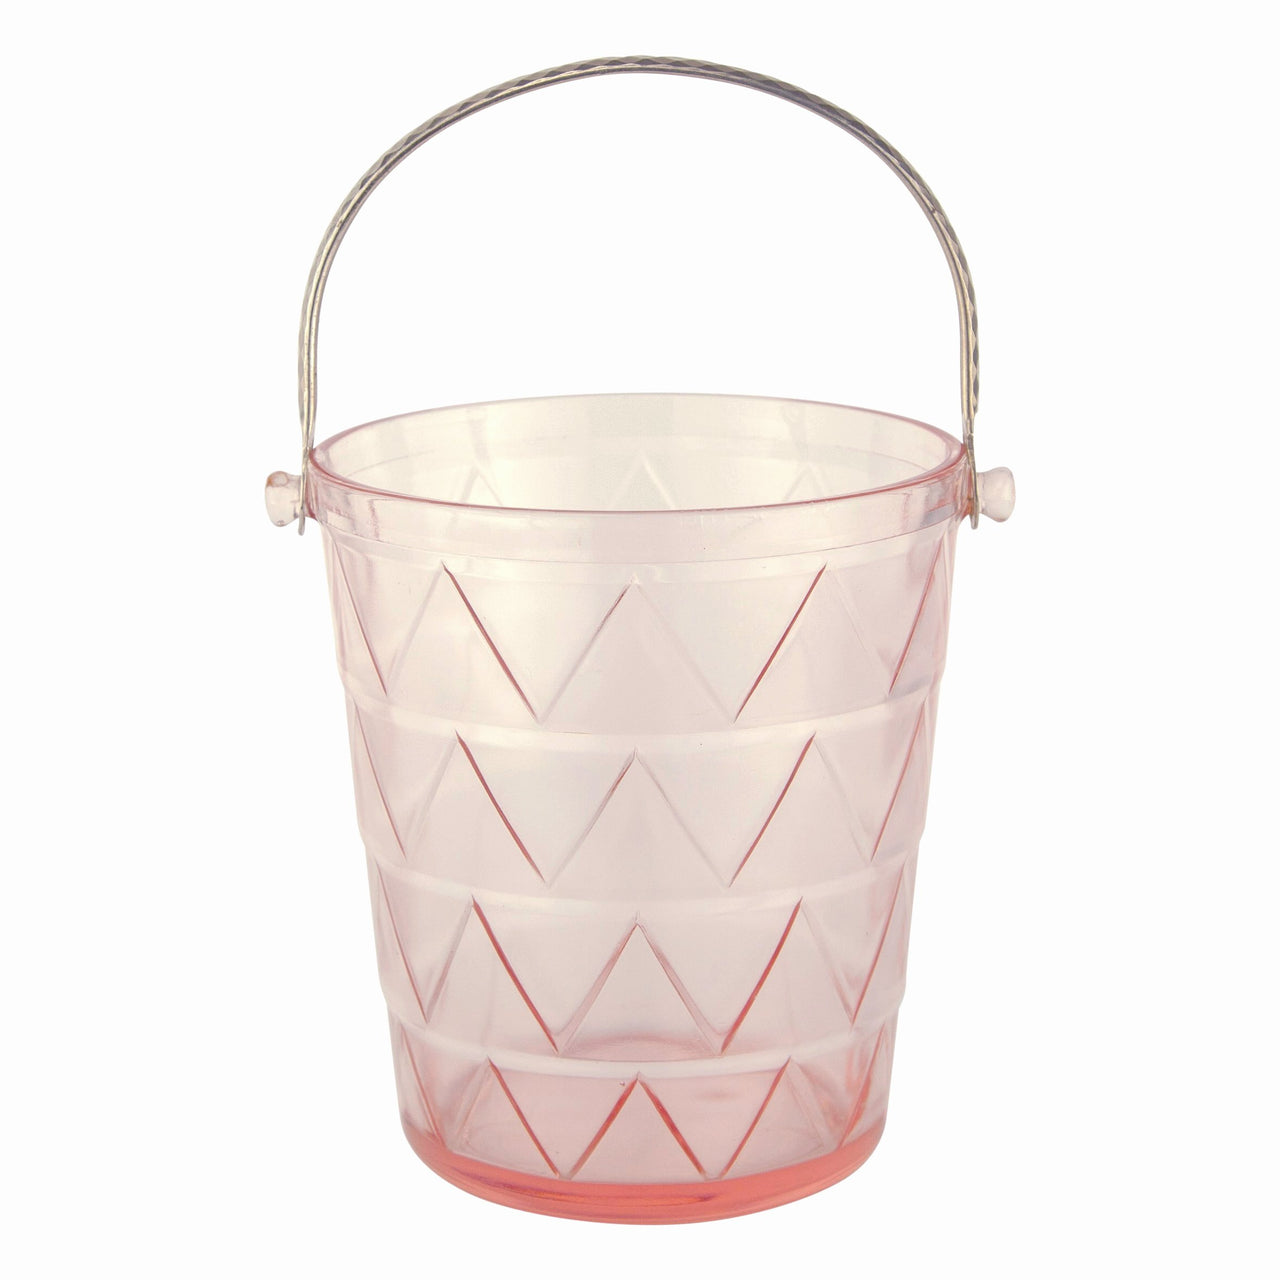 Art Deco Pink Glass Ice Bucket | The Hour Vintage Barware